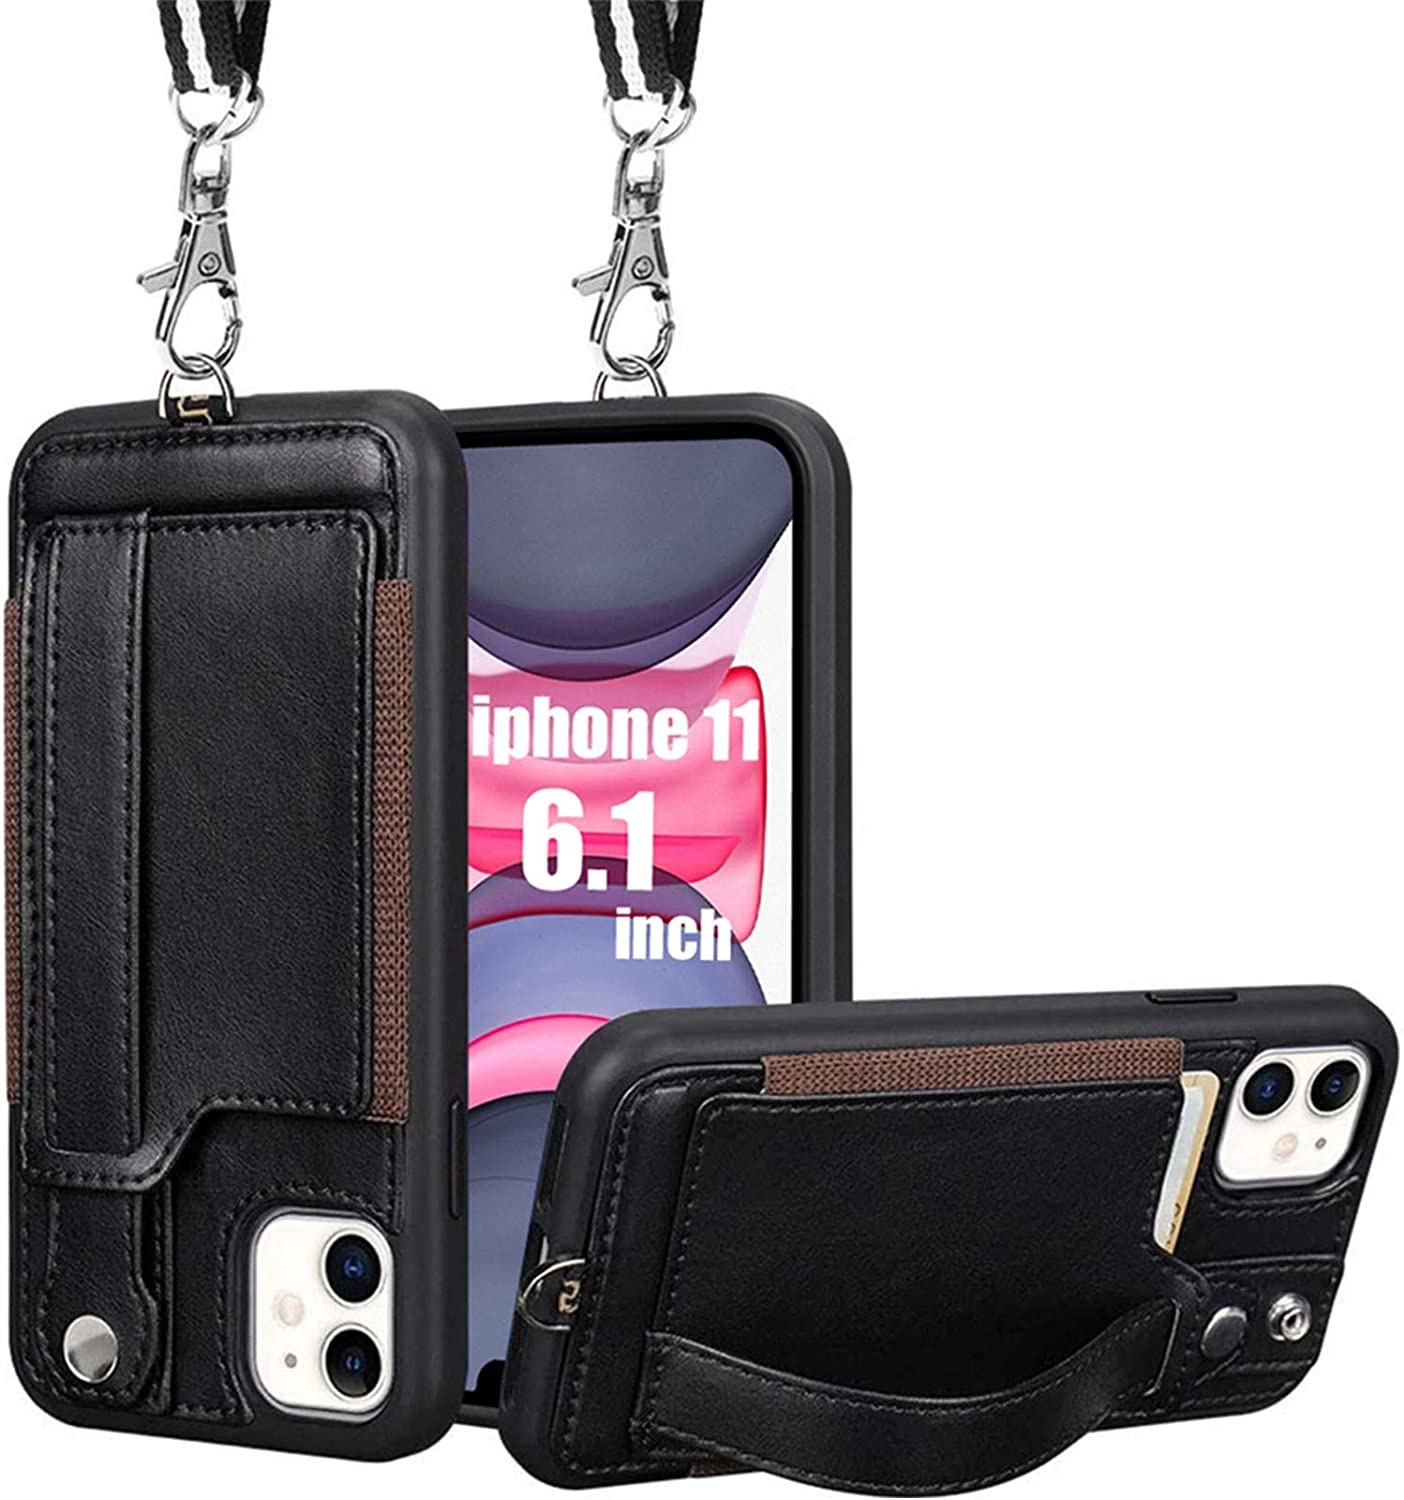 iPhone 11 Wallet Case, TOOVREN iPhone 11 Case Protective Cover with PU Leather Card Holder Adjustable Detachable iPhone Lanyard Stand Strap for iPhone 11 6.1 Inch 2019 Black